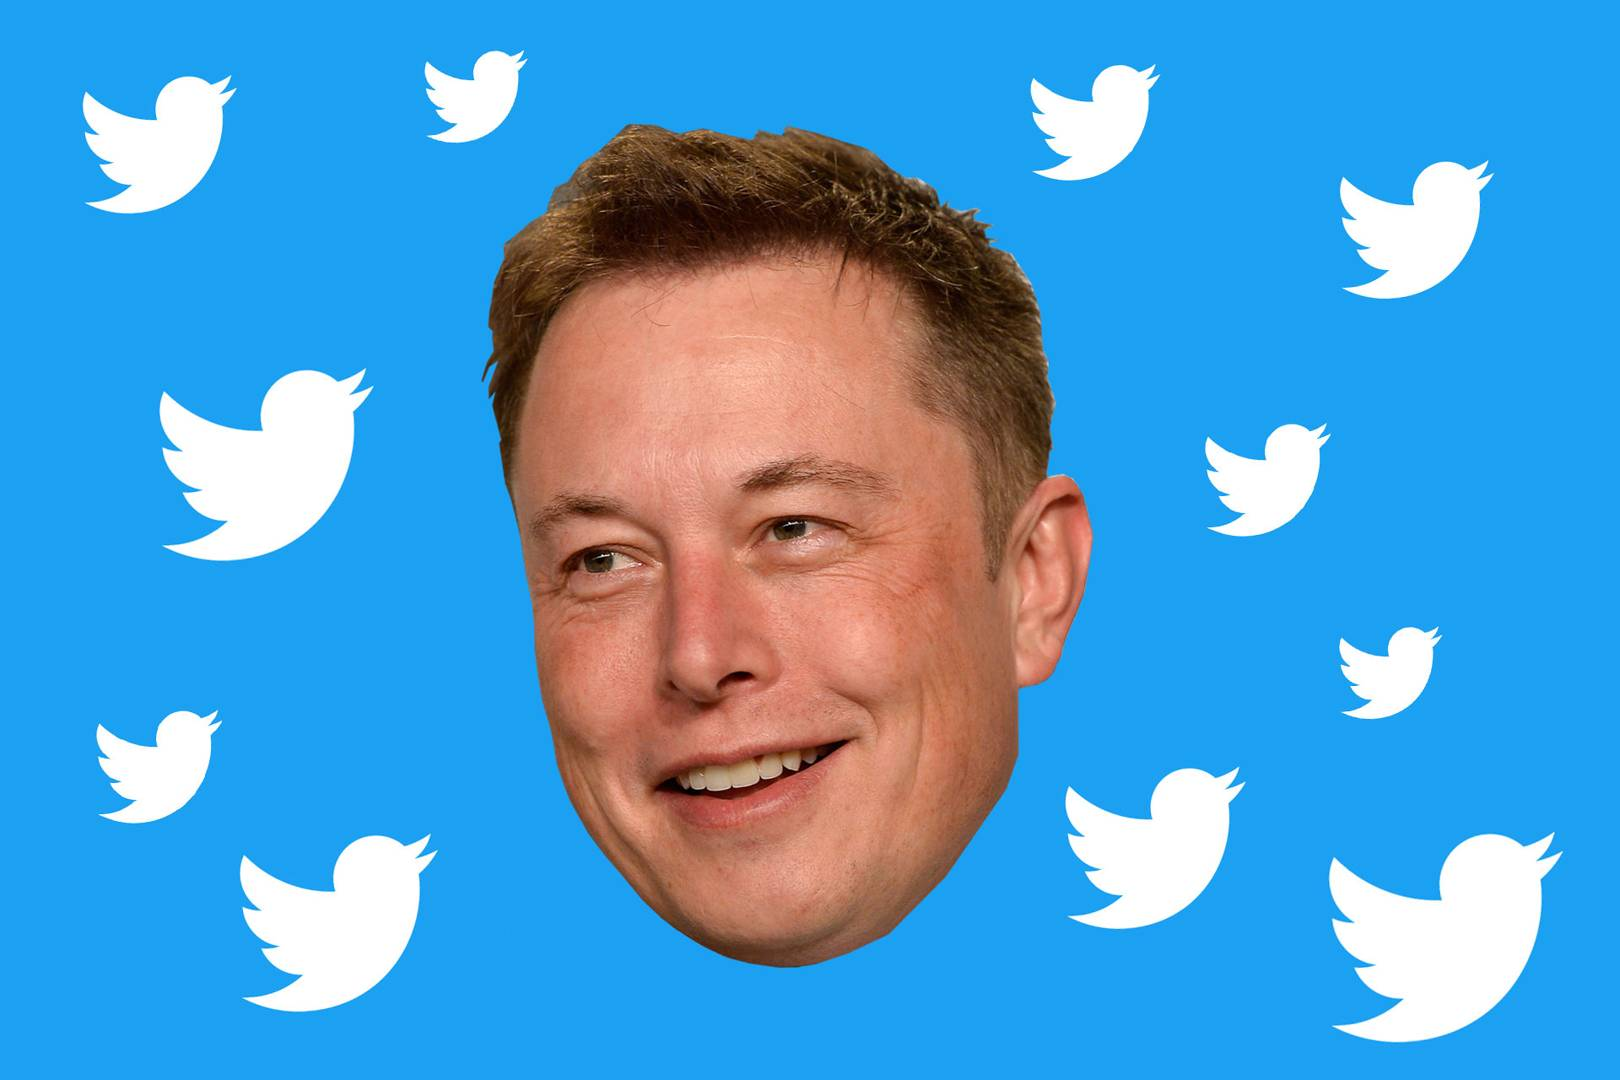 Elon Musk invita i suoi follower a investire su Gamestop